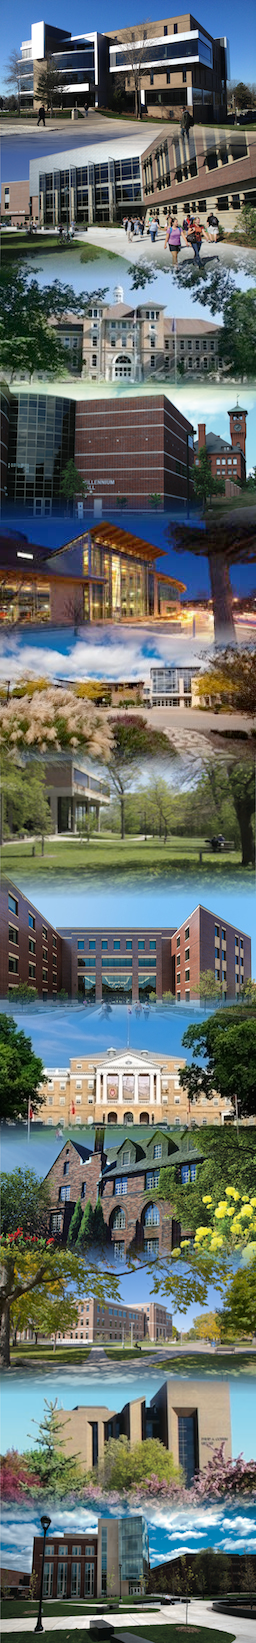 Banner of Iconic Campus Images